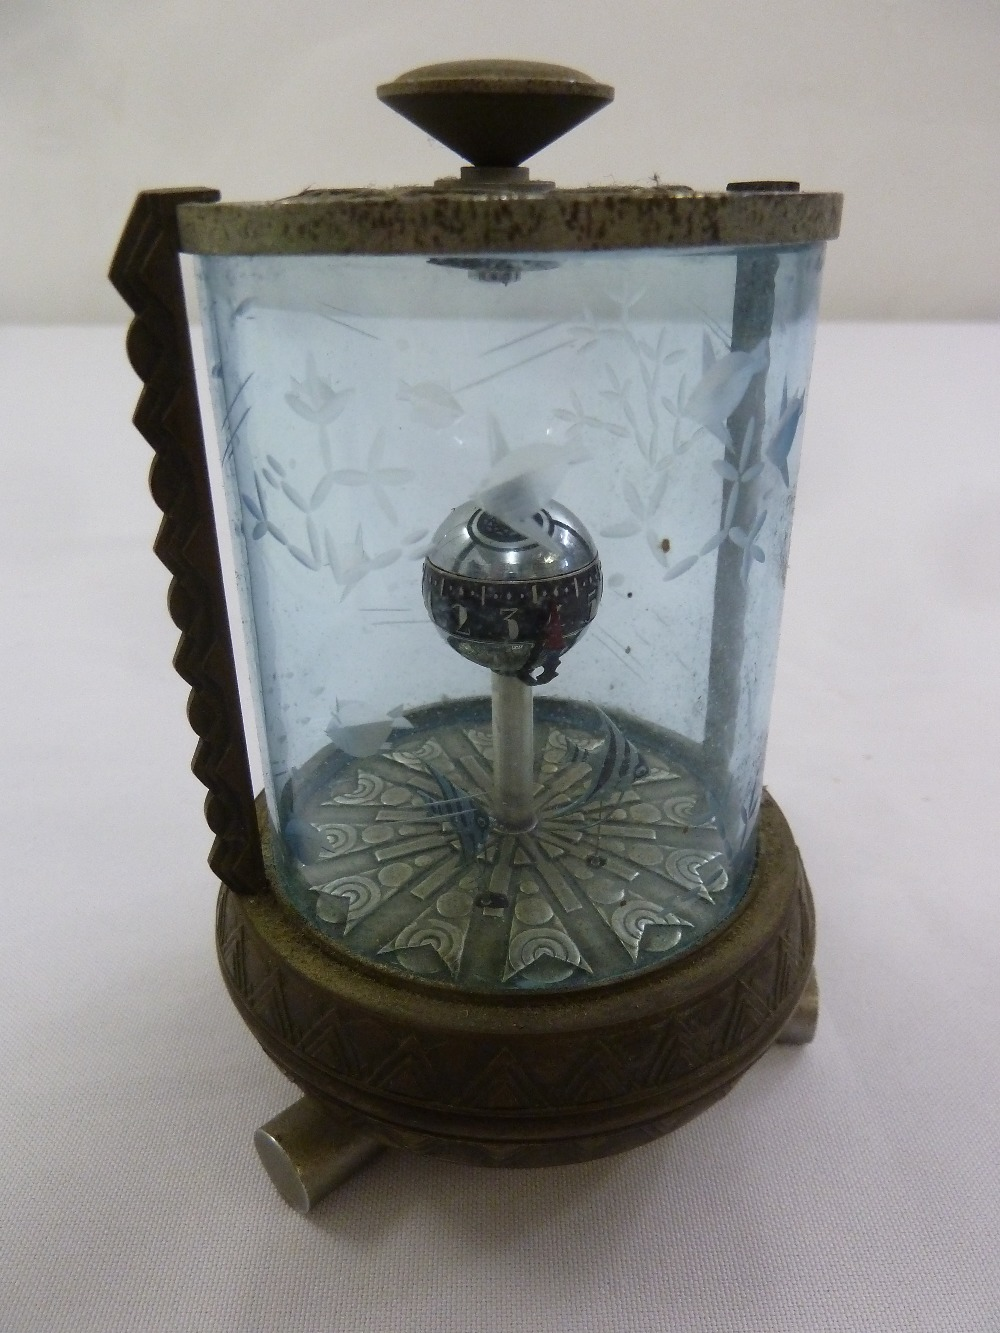 Lot 223 - An automaton desk clock in the form of an aquarium with etched glass and metal base and mounts